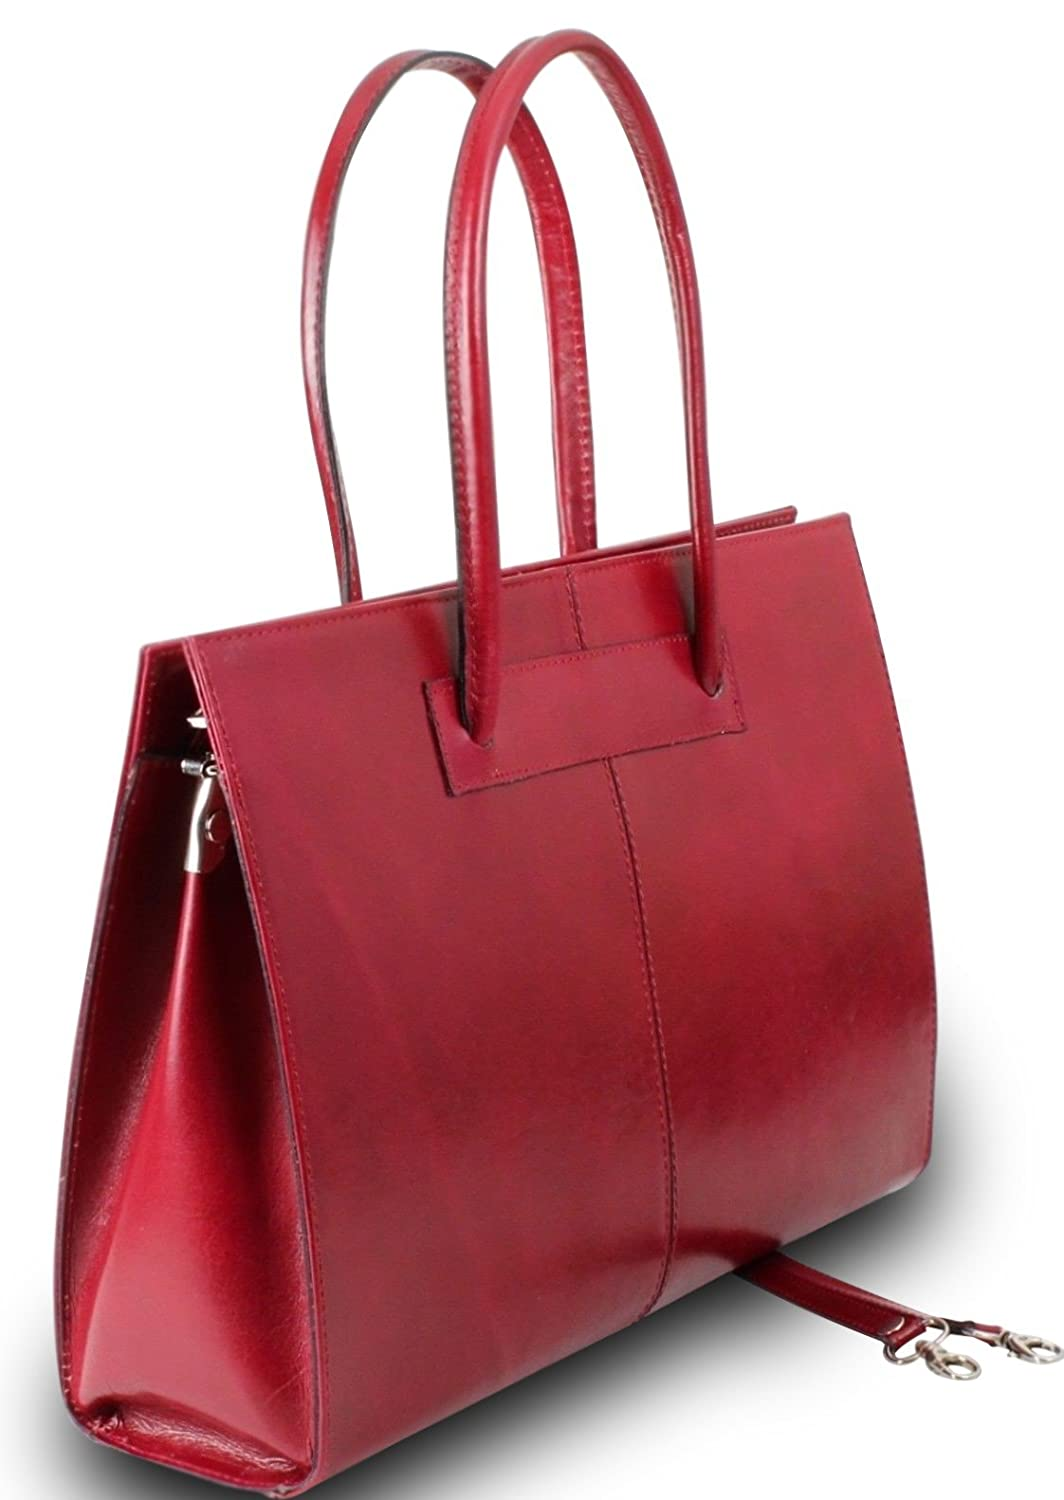 Made In Italy Luxury Handbag It Bag Genuine Leather Women's Shoulder Bag Red